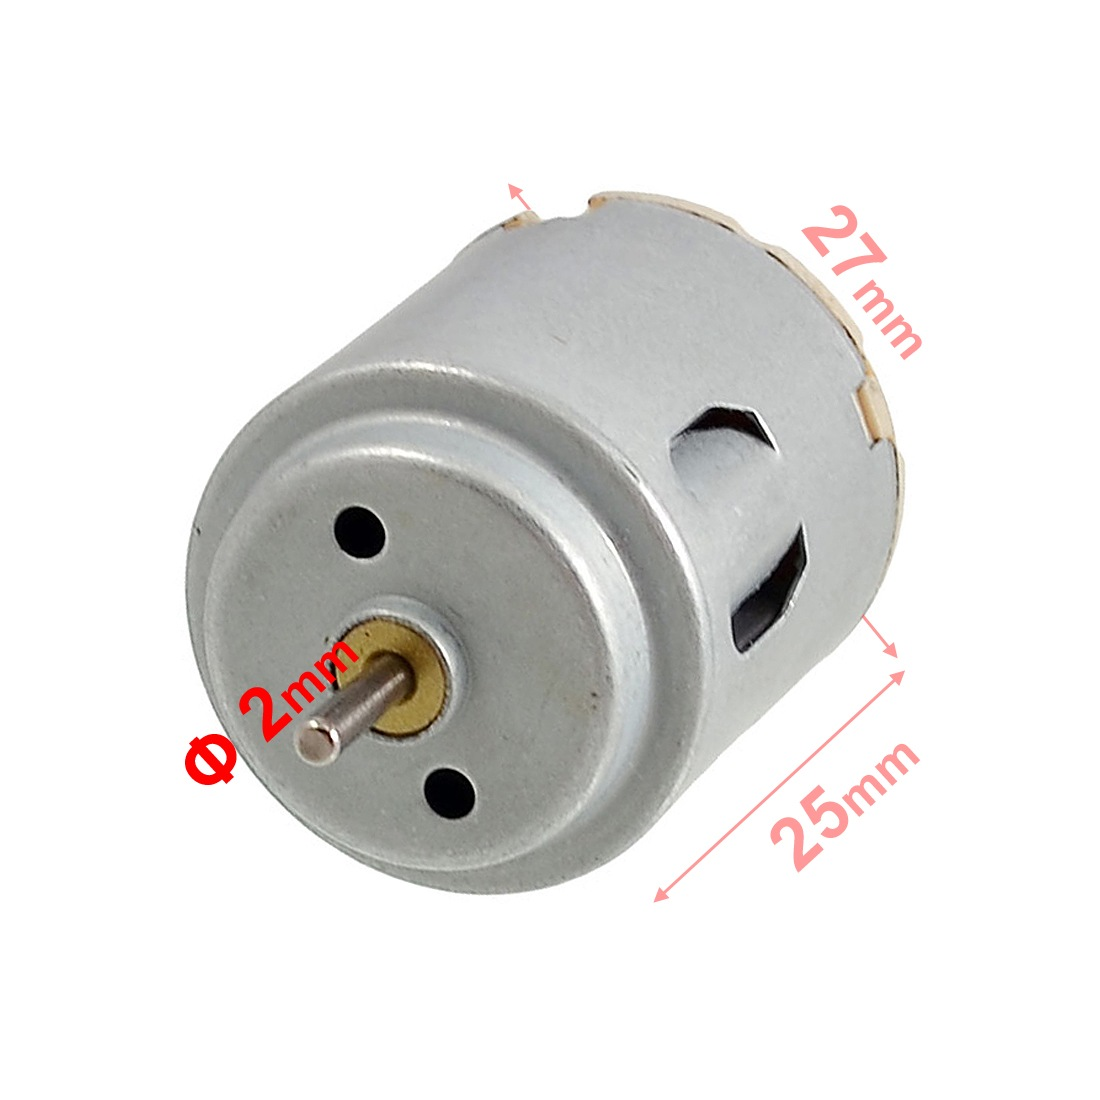 UXCELL Electric Toys <font><b>4.5V</b></font> 0.18A 13000Rpm Mini <font><b>Motor</b></font> Spare Parts <font><b>4.5v</b></font> | dc image